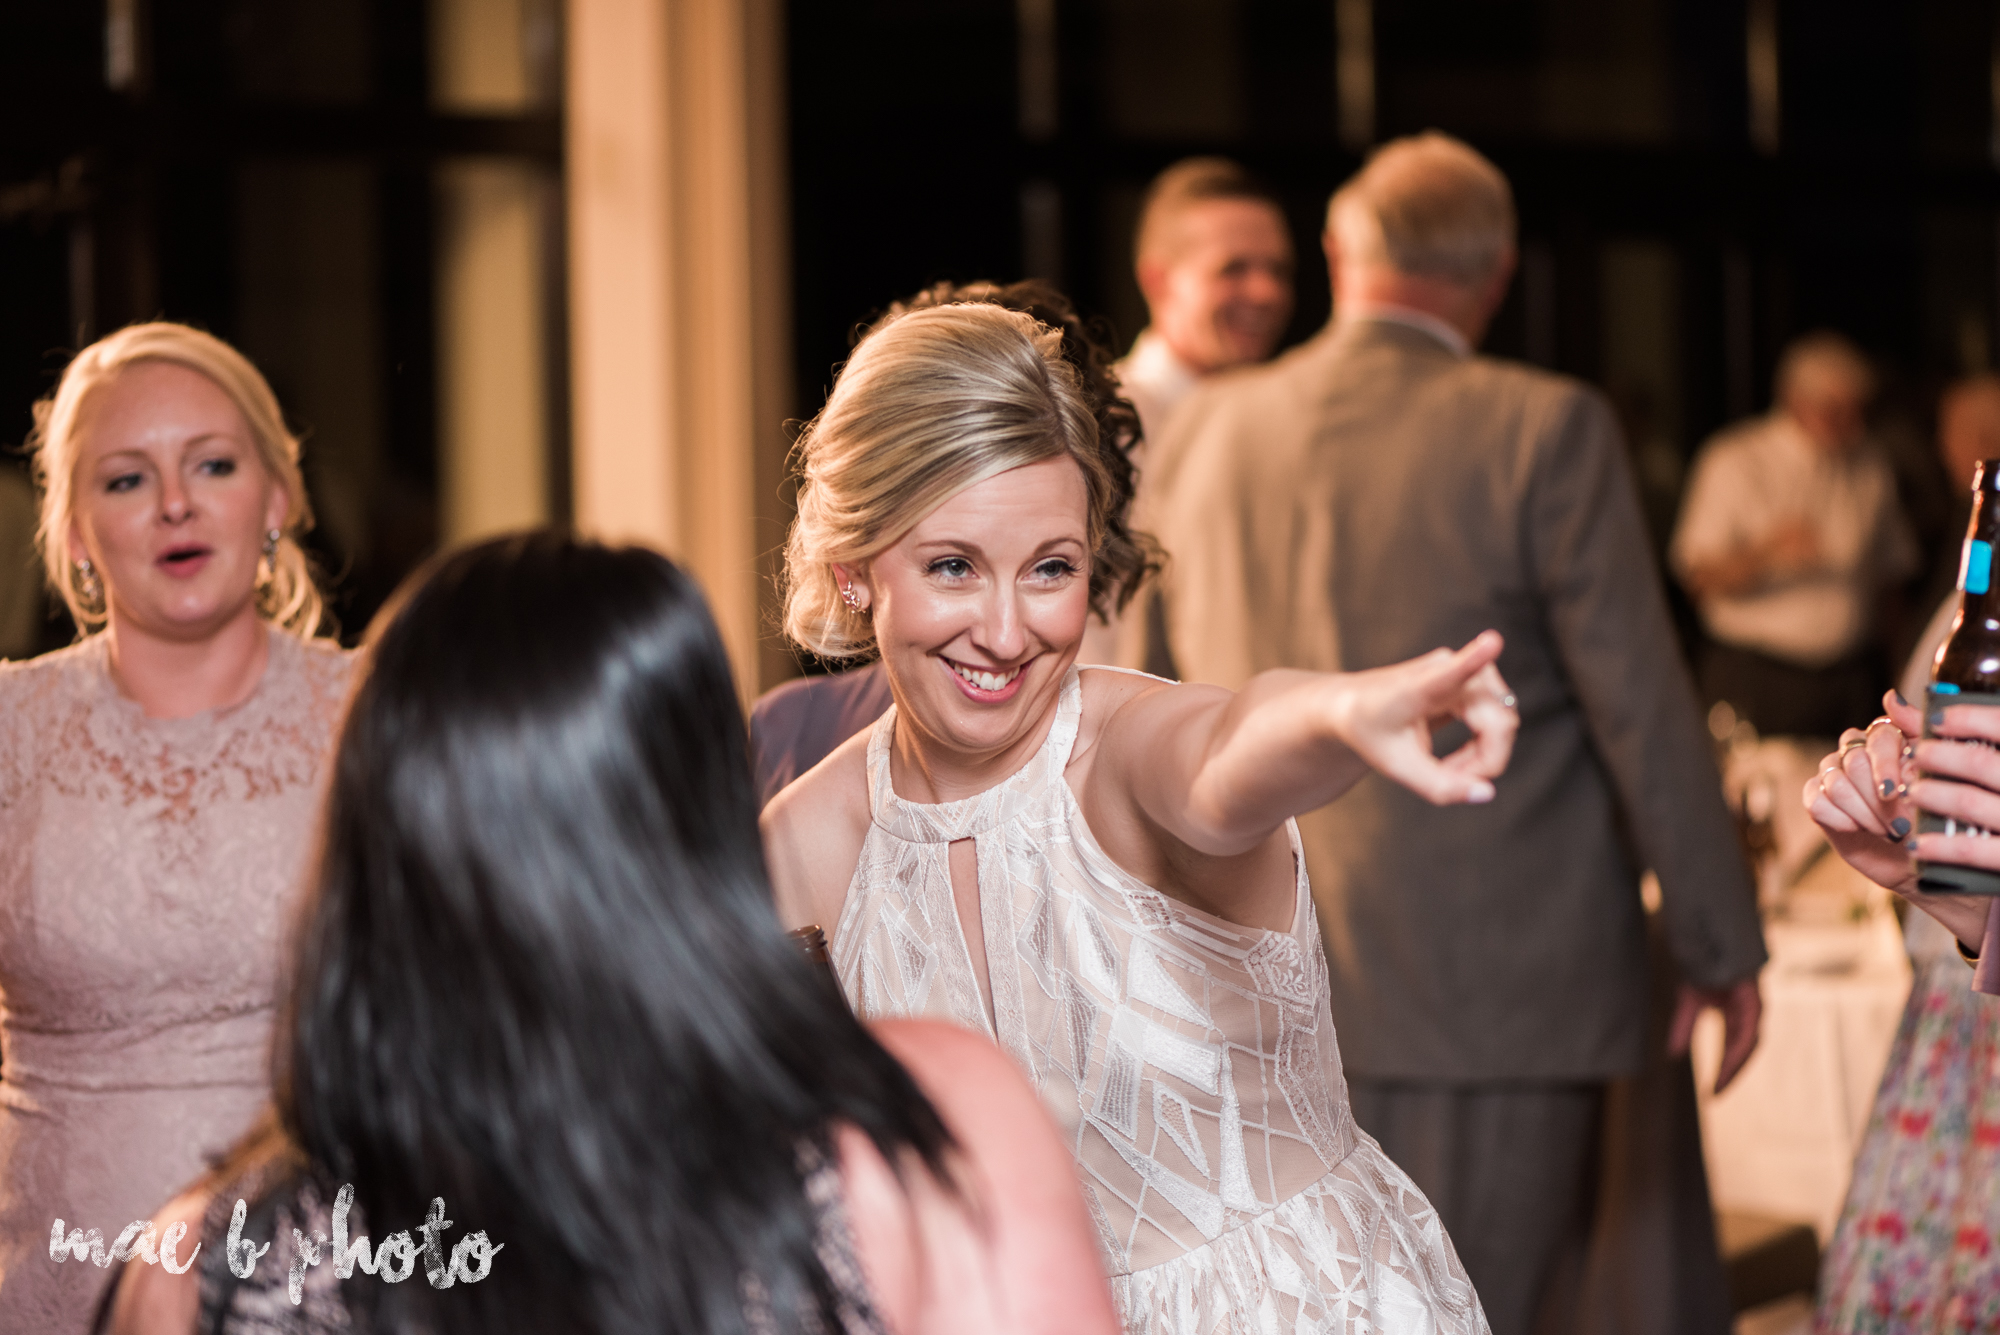 emily and michael's industrial chic summer country club wedding at the lake club in poland ohio photographed by cleveland wedding photographer mae b photo-128.jpg